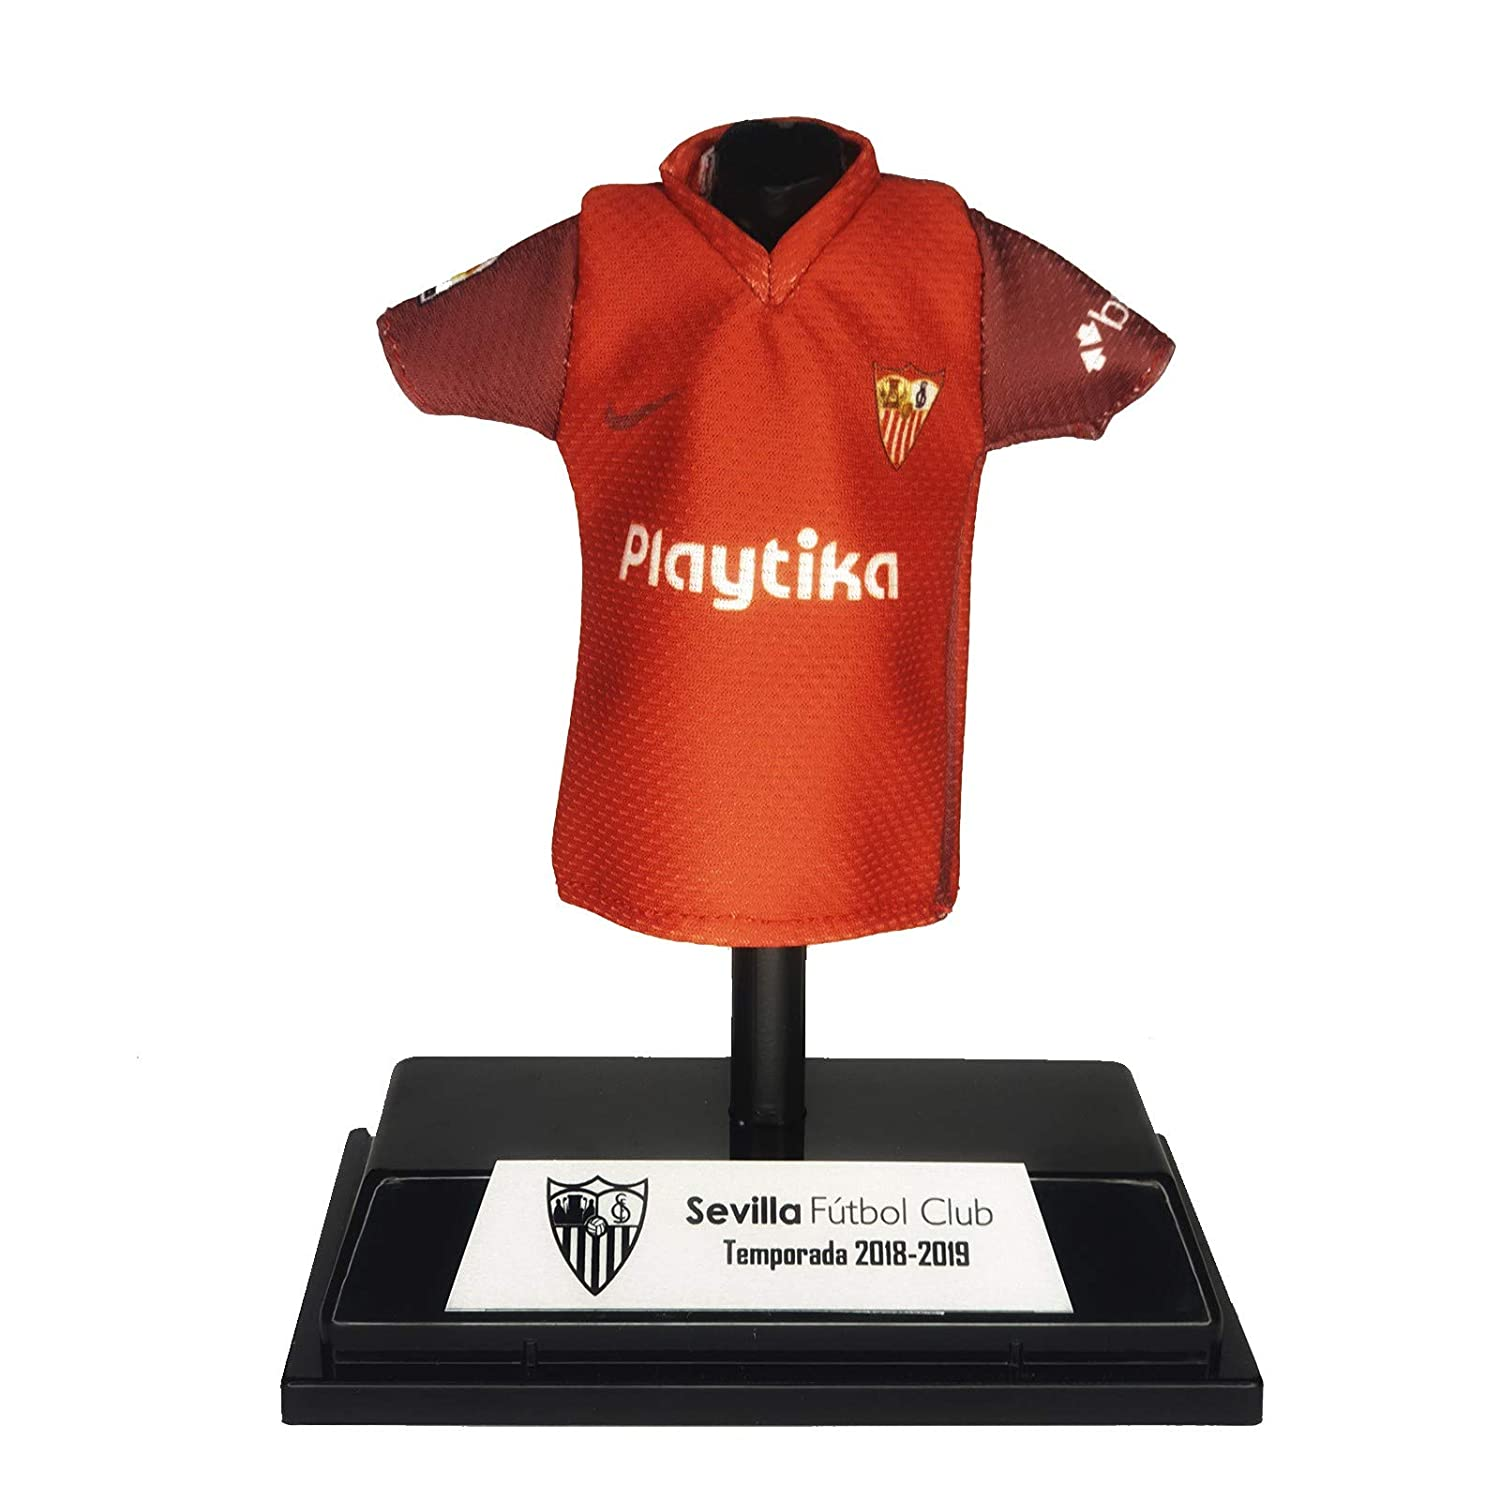 SFC SEVILLA FUTBOL CLUB Minishirt 18-19 2ª equipación: Amazon.es ...